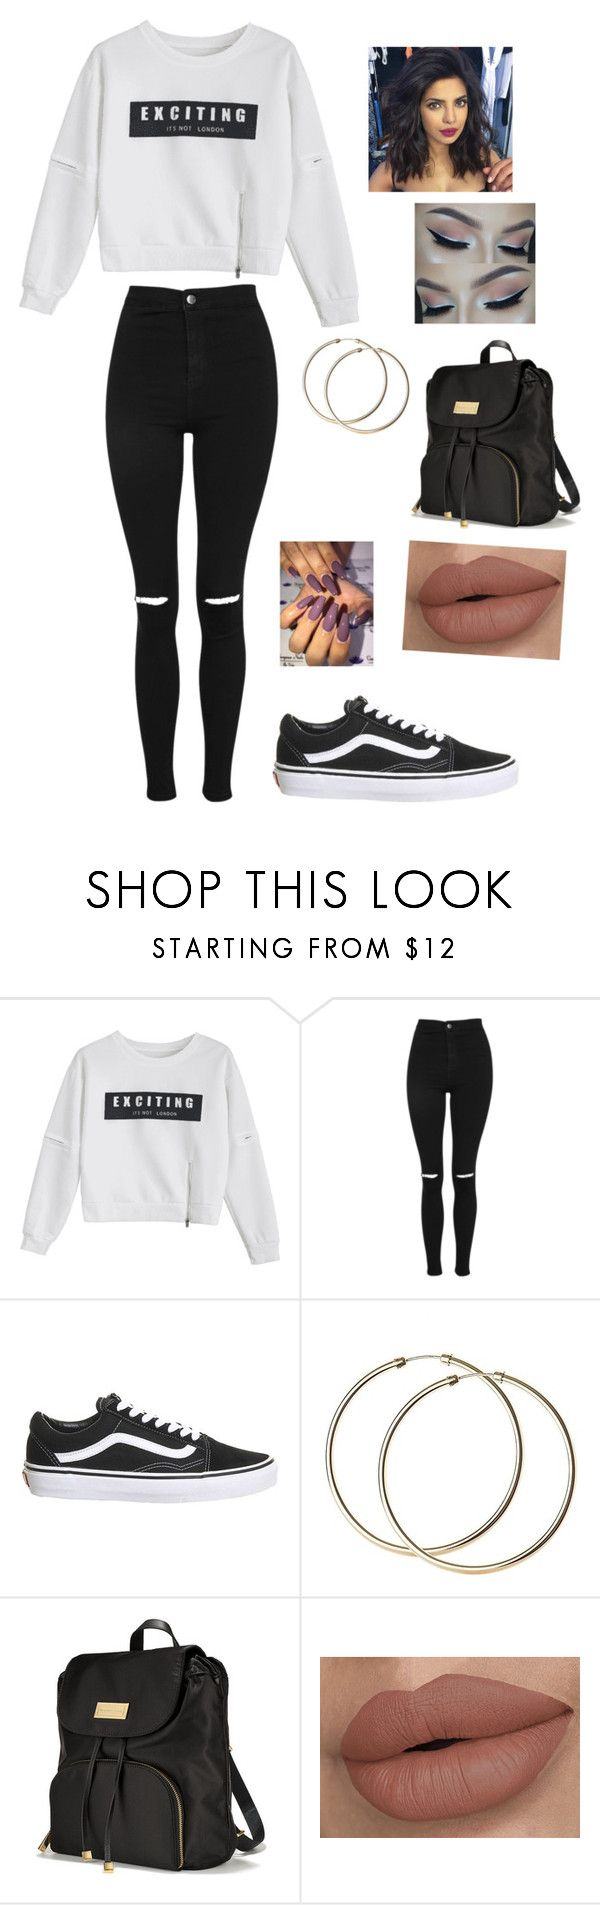 """Untitled #388"" by brie-karitsa-luciano on Polyvore featuring Topshop and Victoria's Secret"